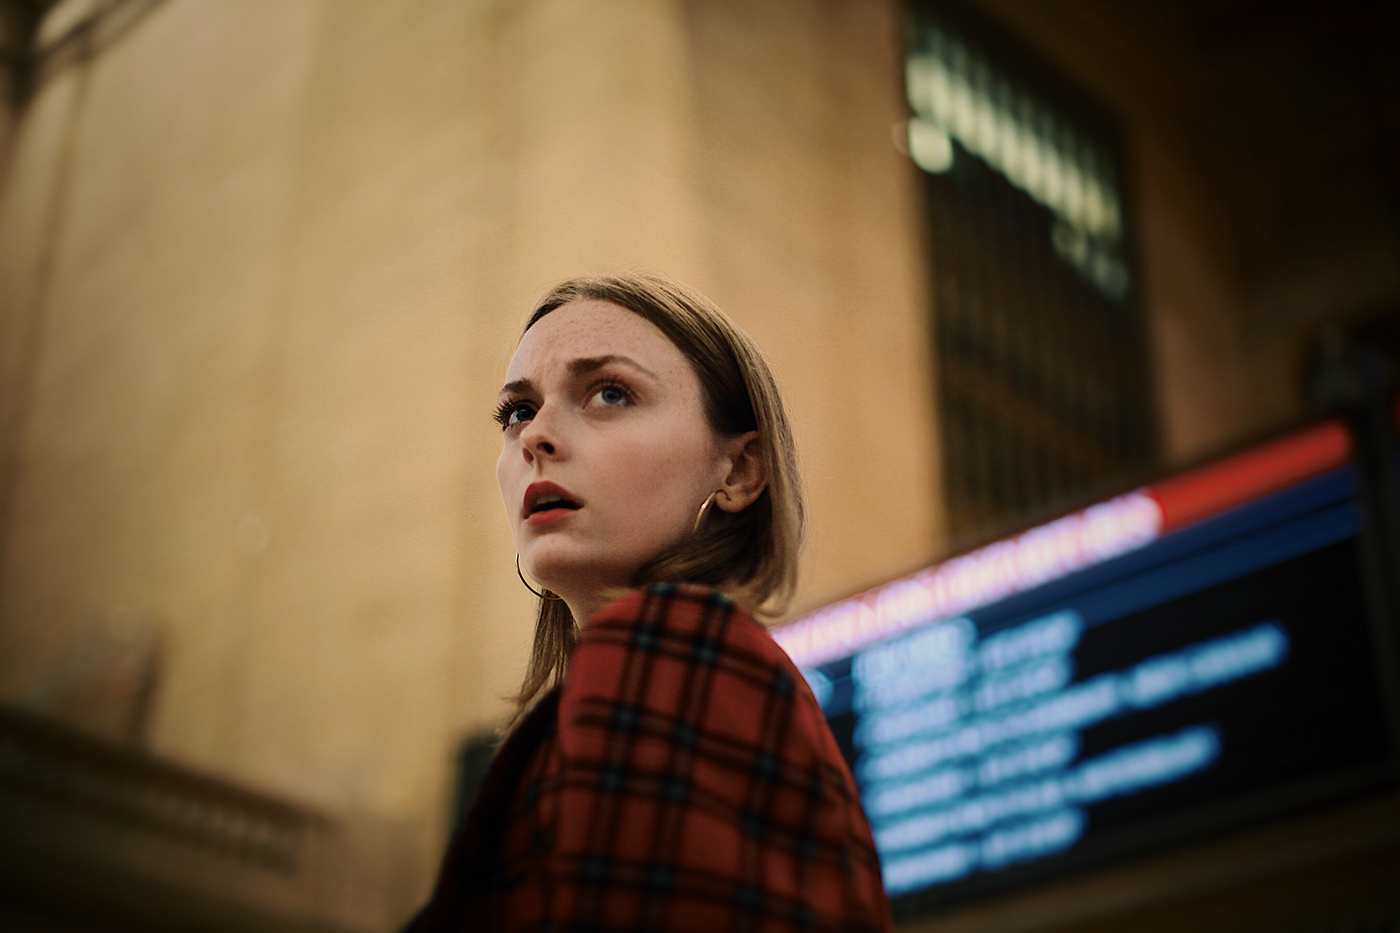 baader-meinhof editorial Photography  model grand central